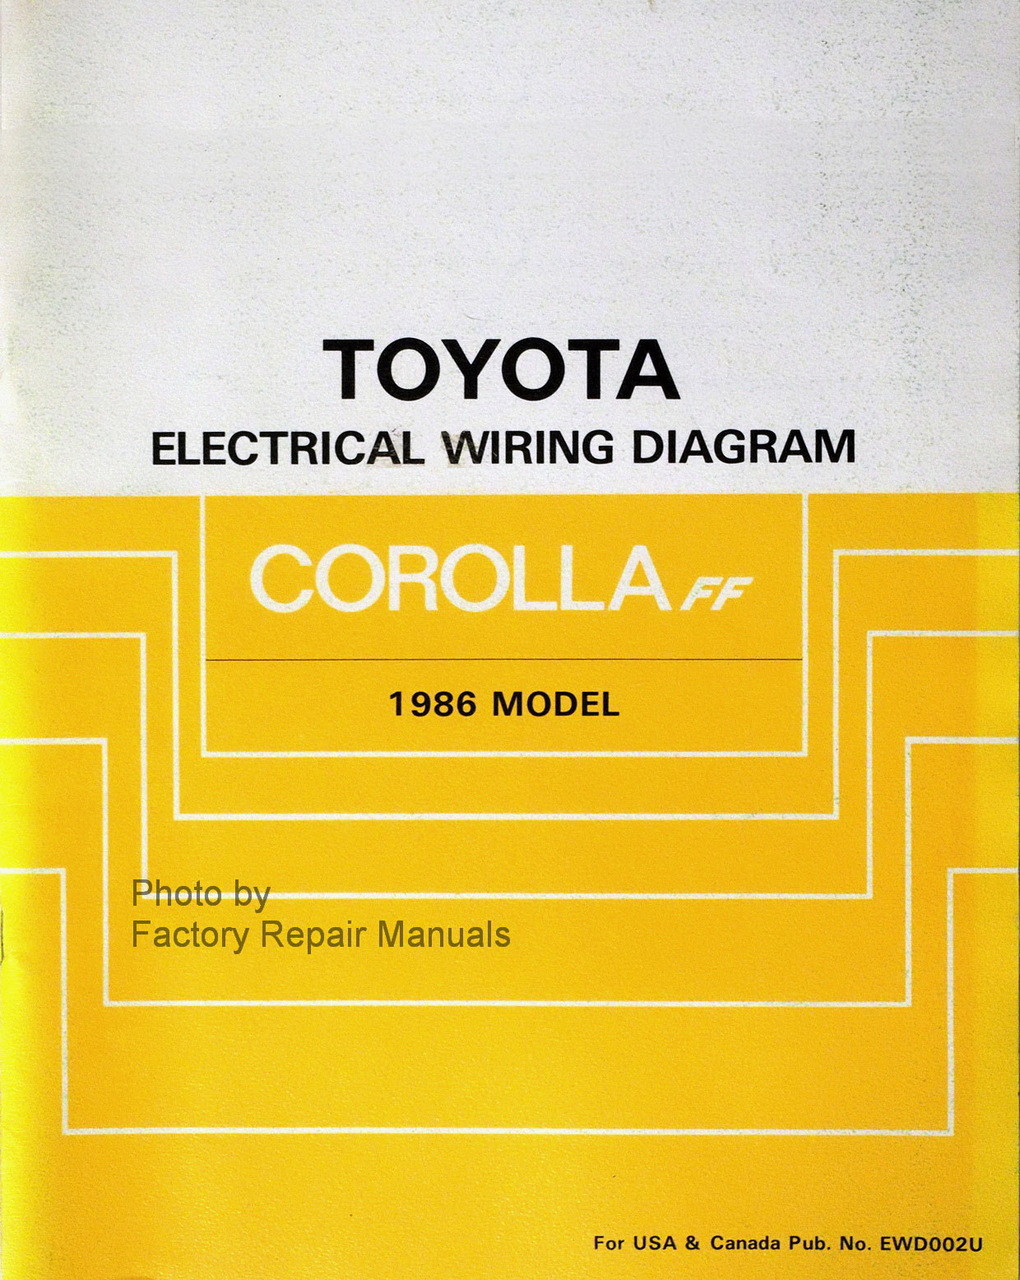 1986 Toyota Corolla Workshop Manual